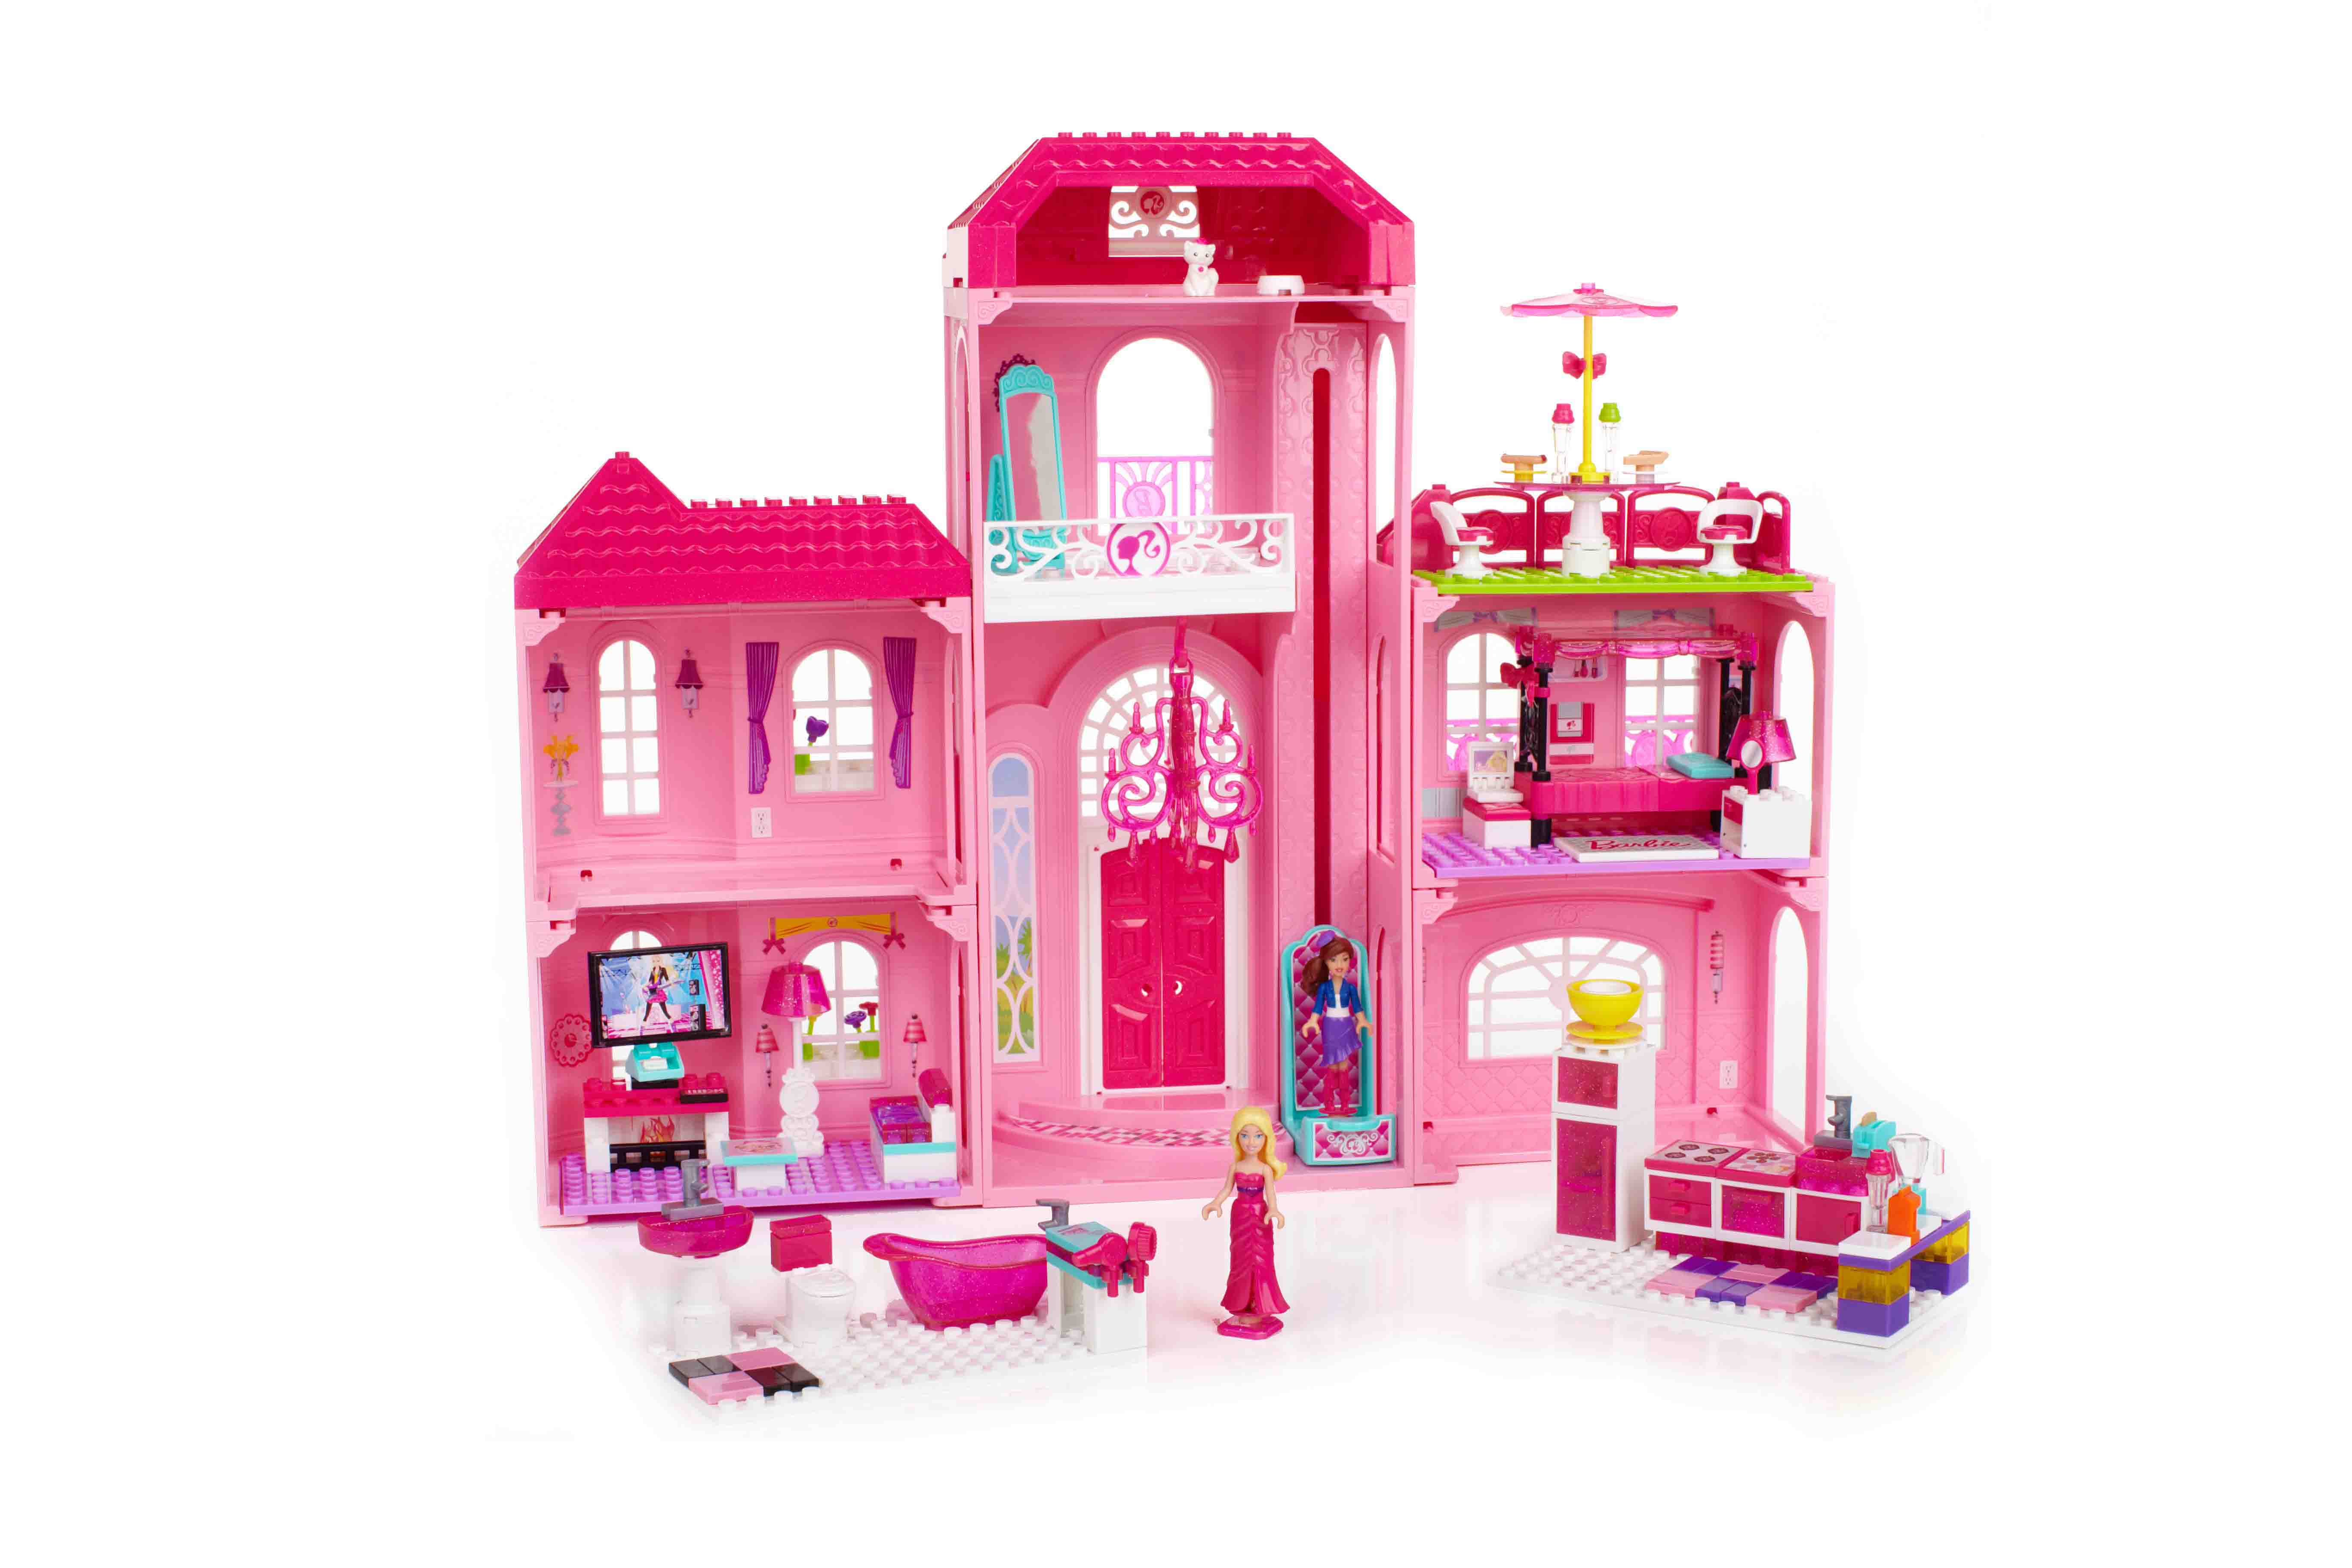 A 14286740 additionally Mega Bloks Barbie Build In Style Luxury Mansion Review Giveaway Megabloksbarbie as well A 17089187 as well Dream Home Design together with Dream House Plans. on dreamhouse kitchen